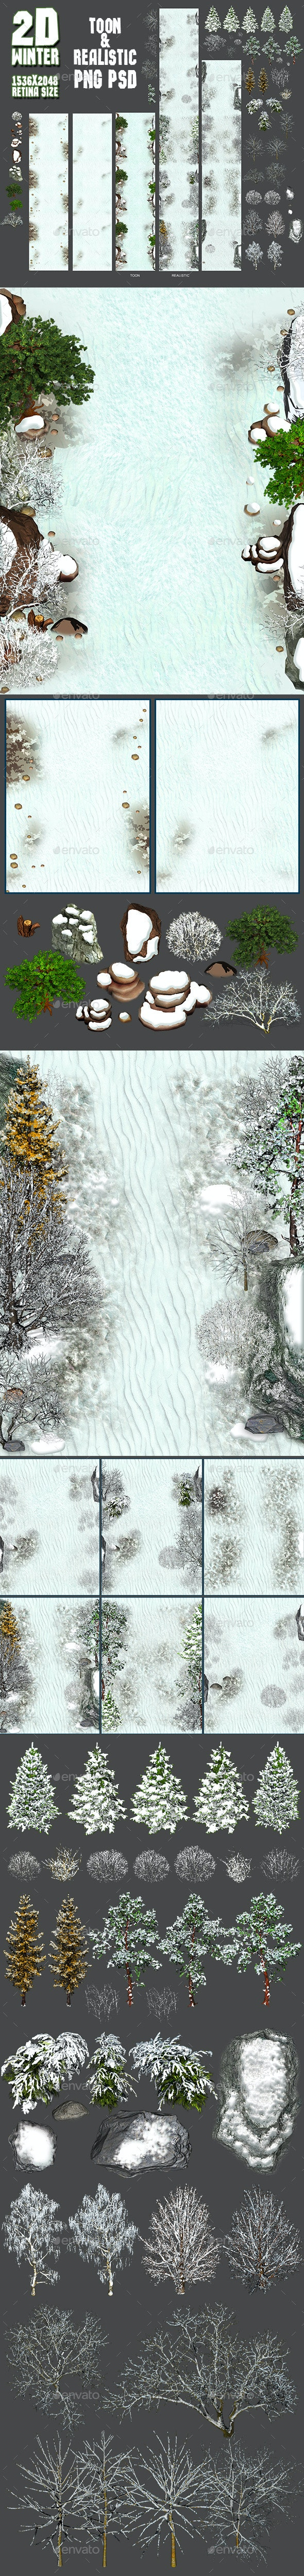 2D Toon and Realistic Winter Game Backgrounds - Tilesets Game Assets